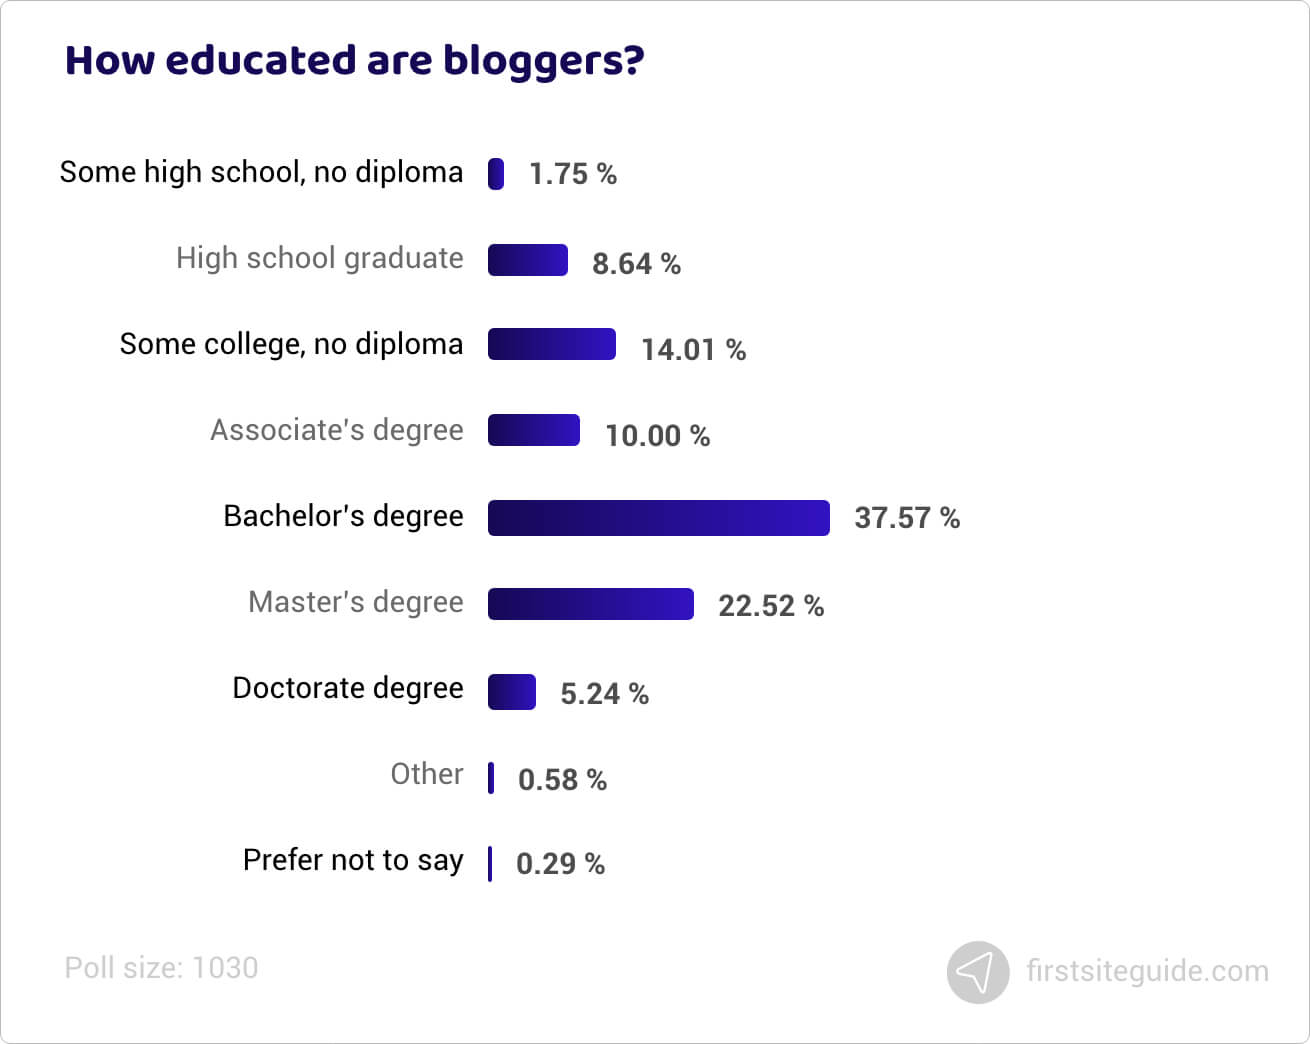 How educated are bloggers